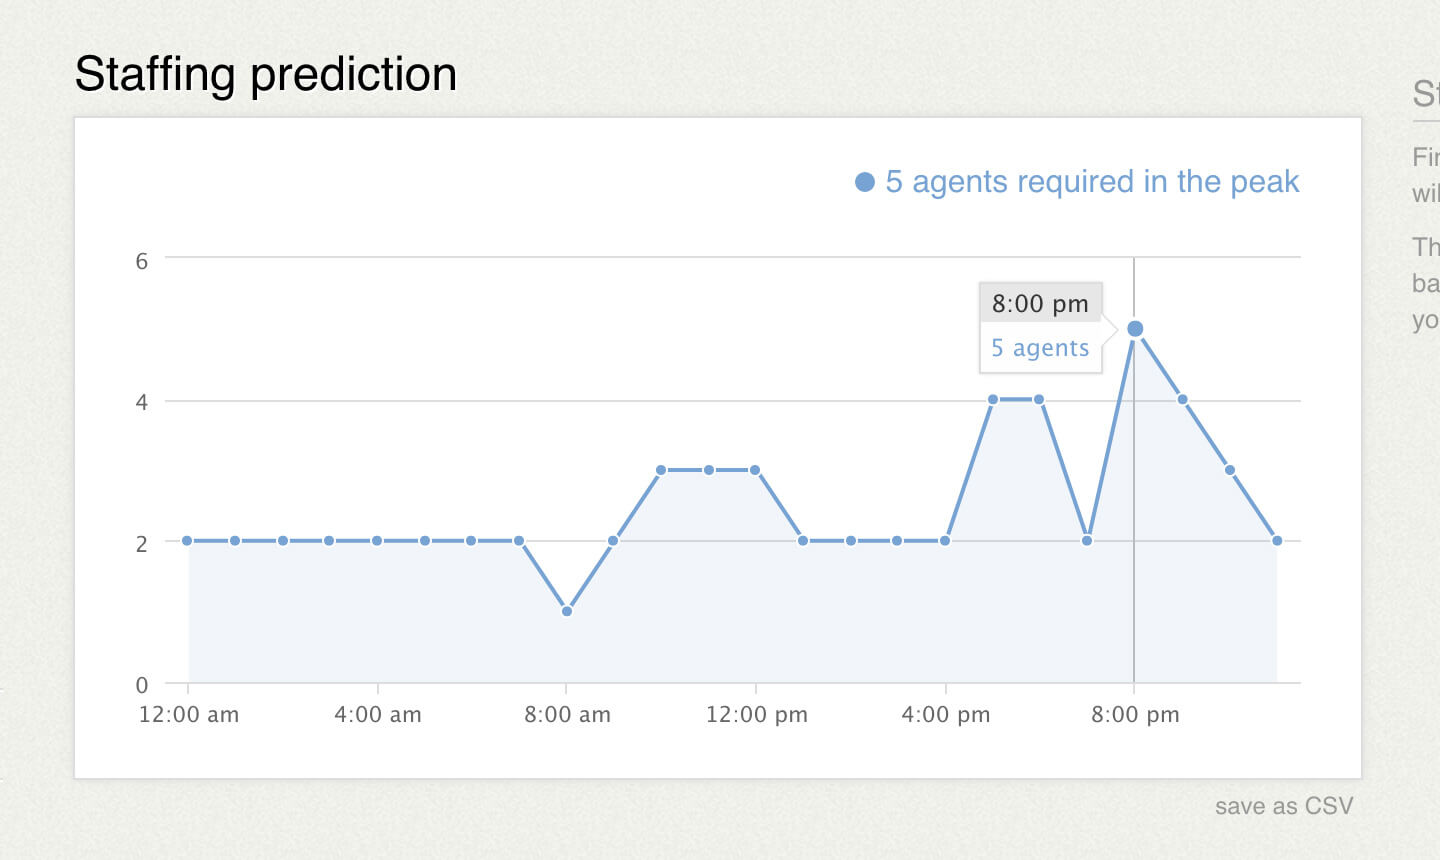 The LiveChat integration includes a handy staffing prediction tool.